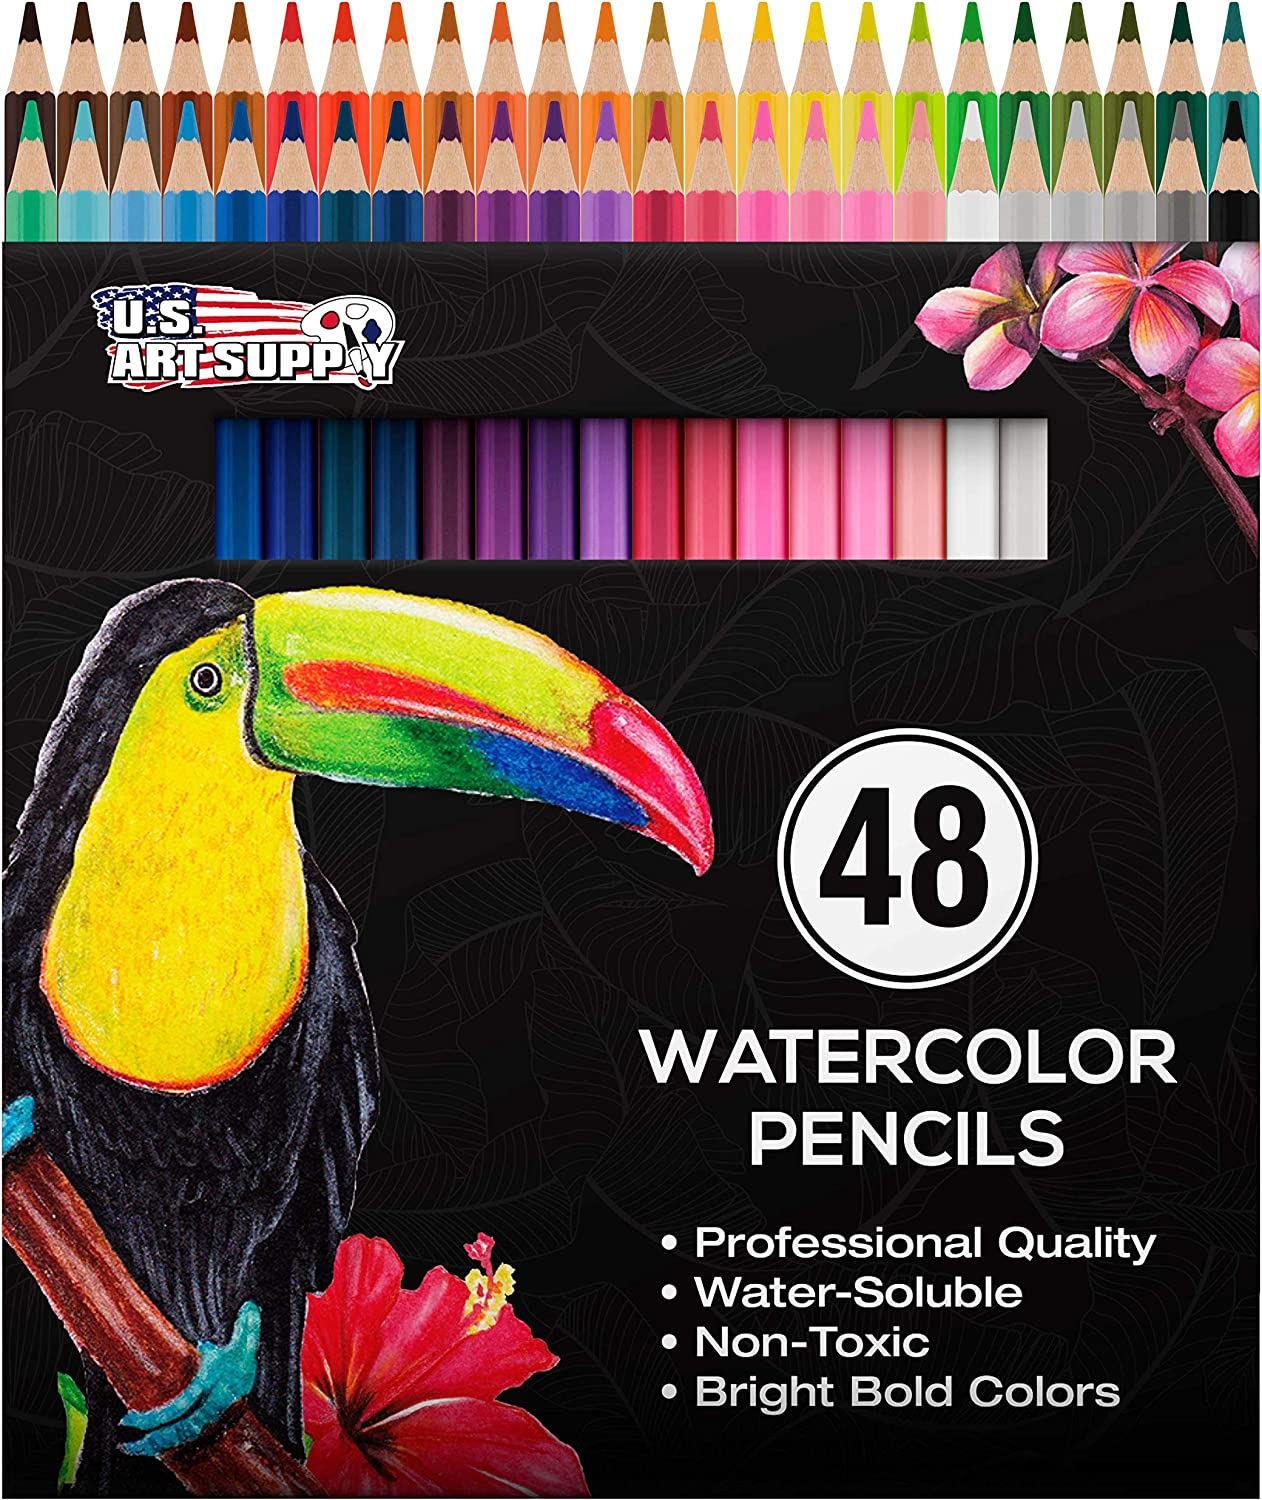 U.S. Art Supply 48 Piece Watercolor Artist Grade Water Soluble Colored Pencil Set, Full Sized 7 Inch Pencil Length